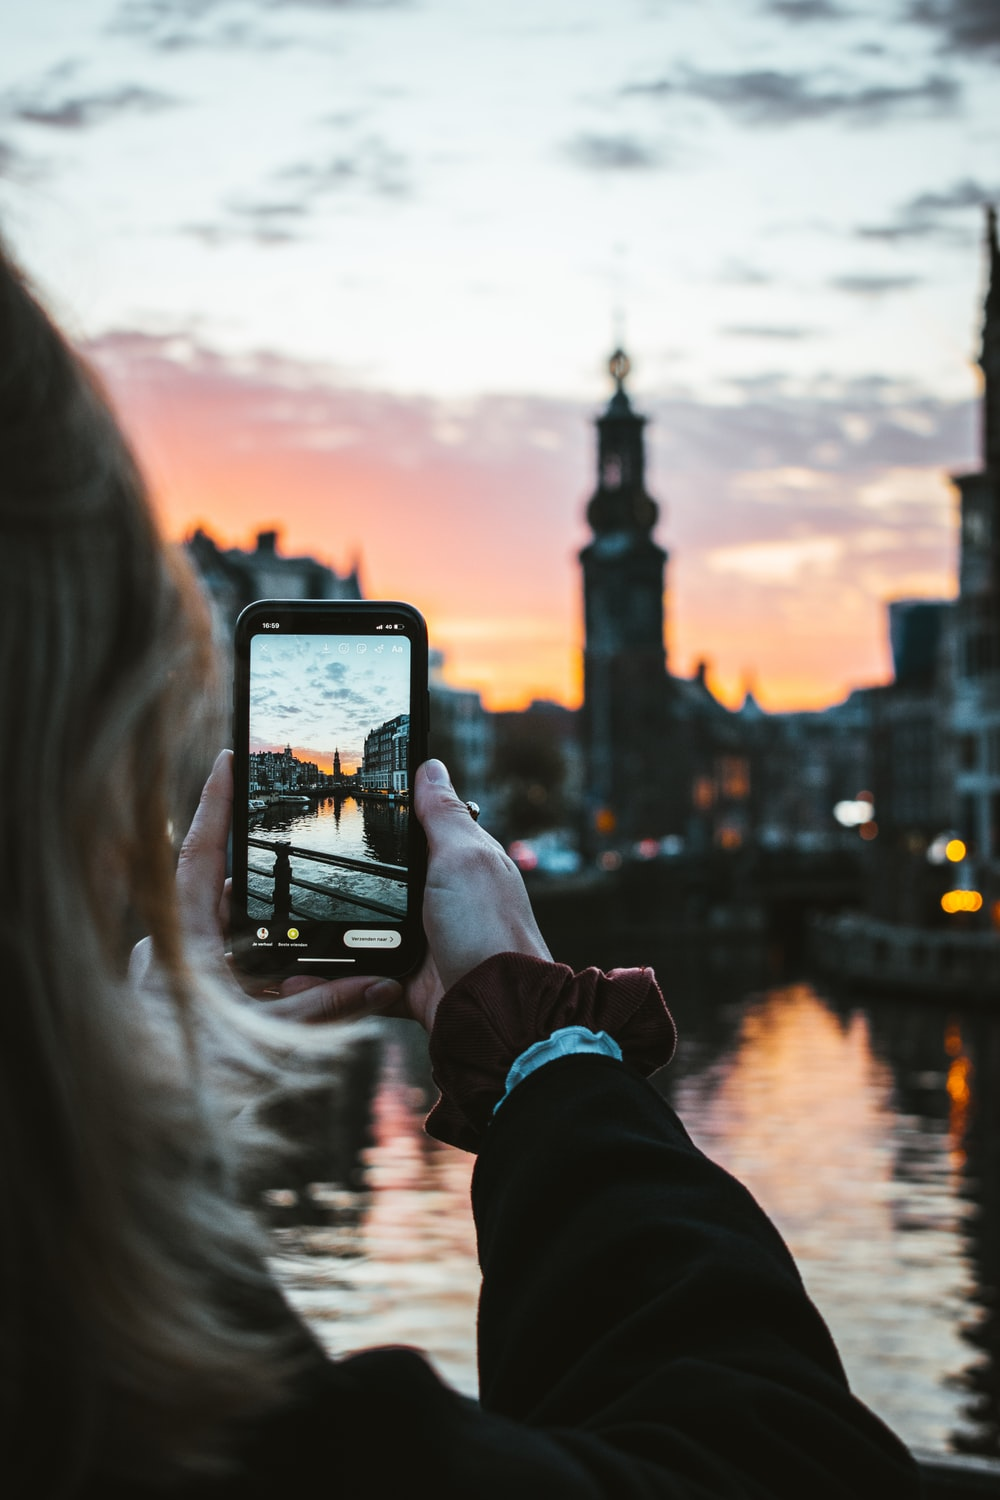 person holding black smartphone taking photo of city buildings during sunset